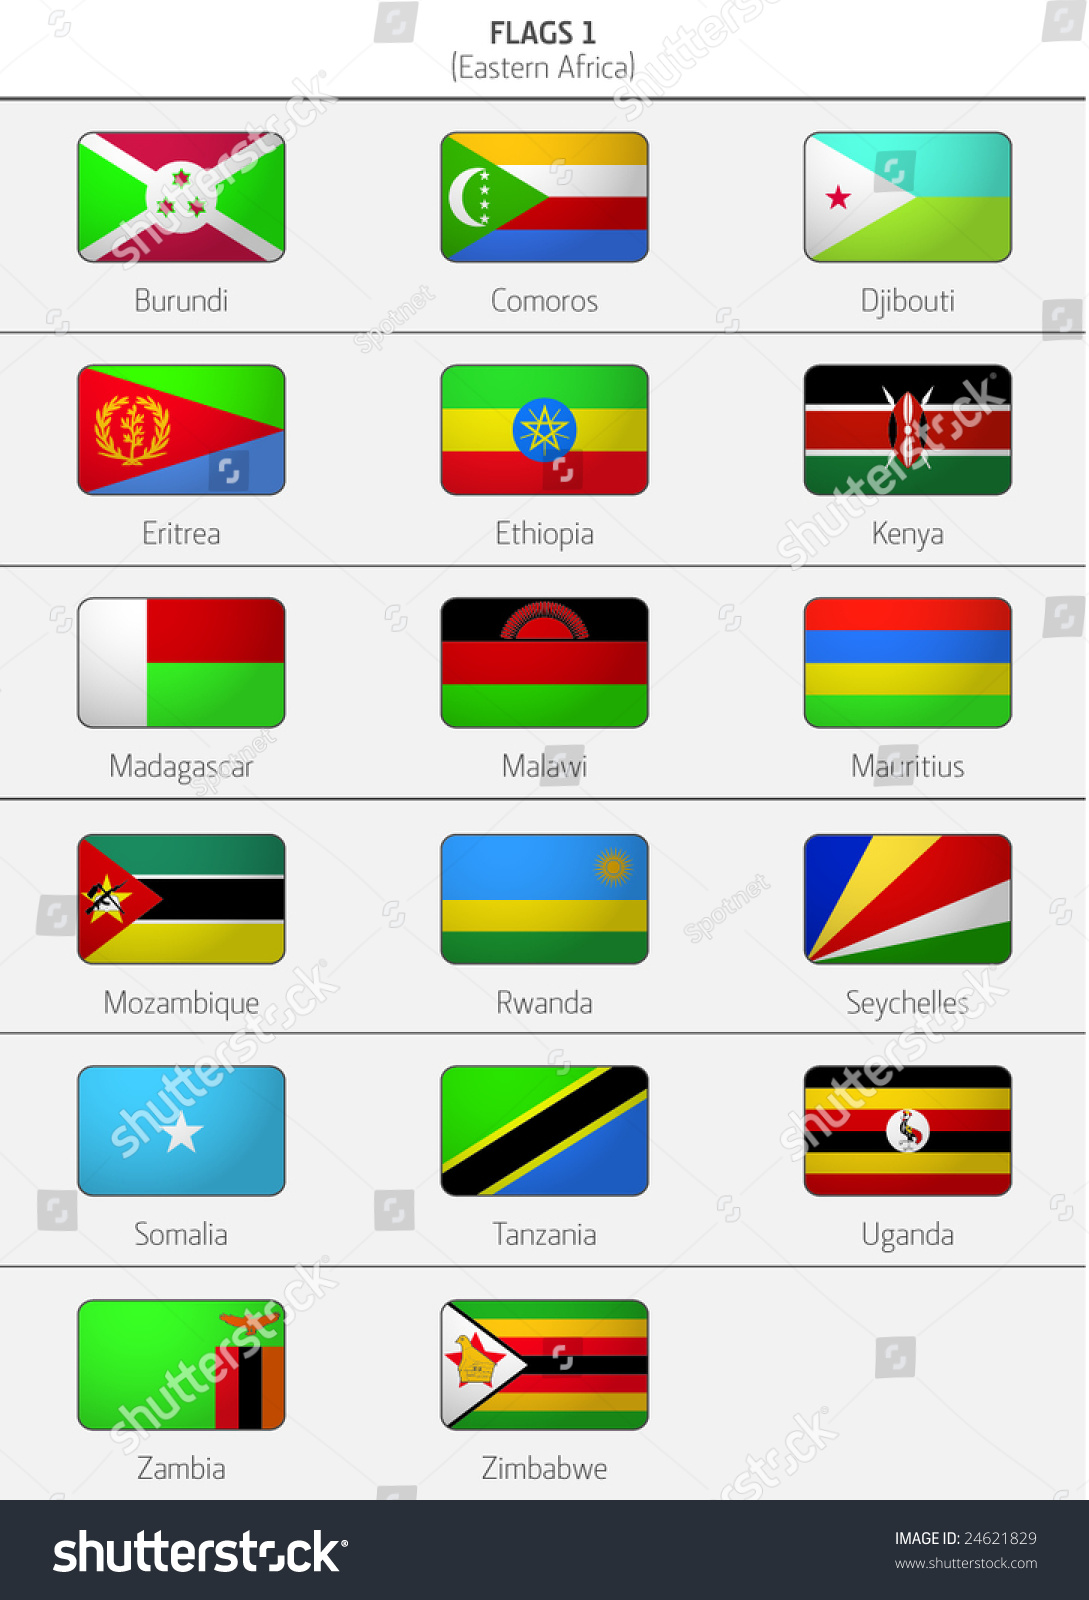 Flags eastern africa countries 2 stock vector 24621829 shutterstock flags of eastern africa countries 2 biocorpaavc